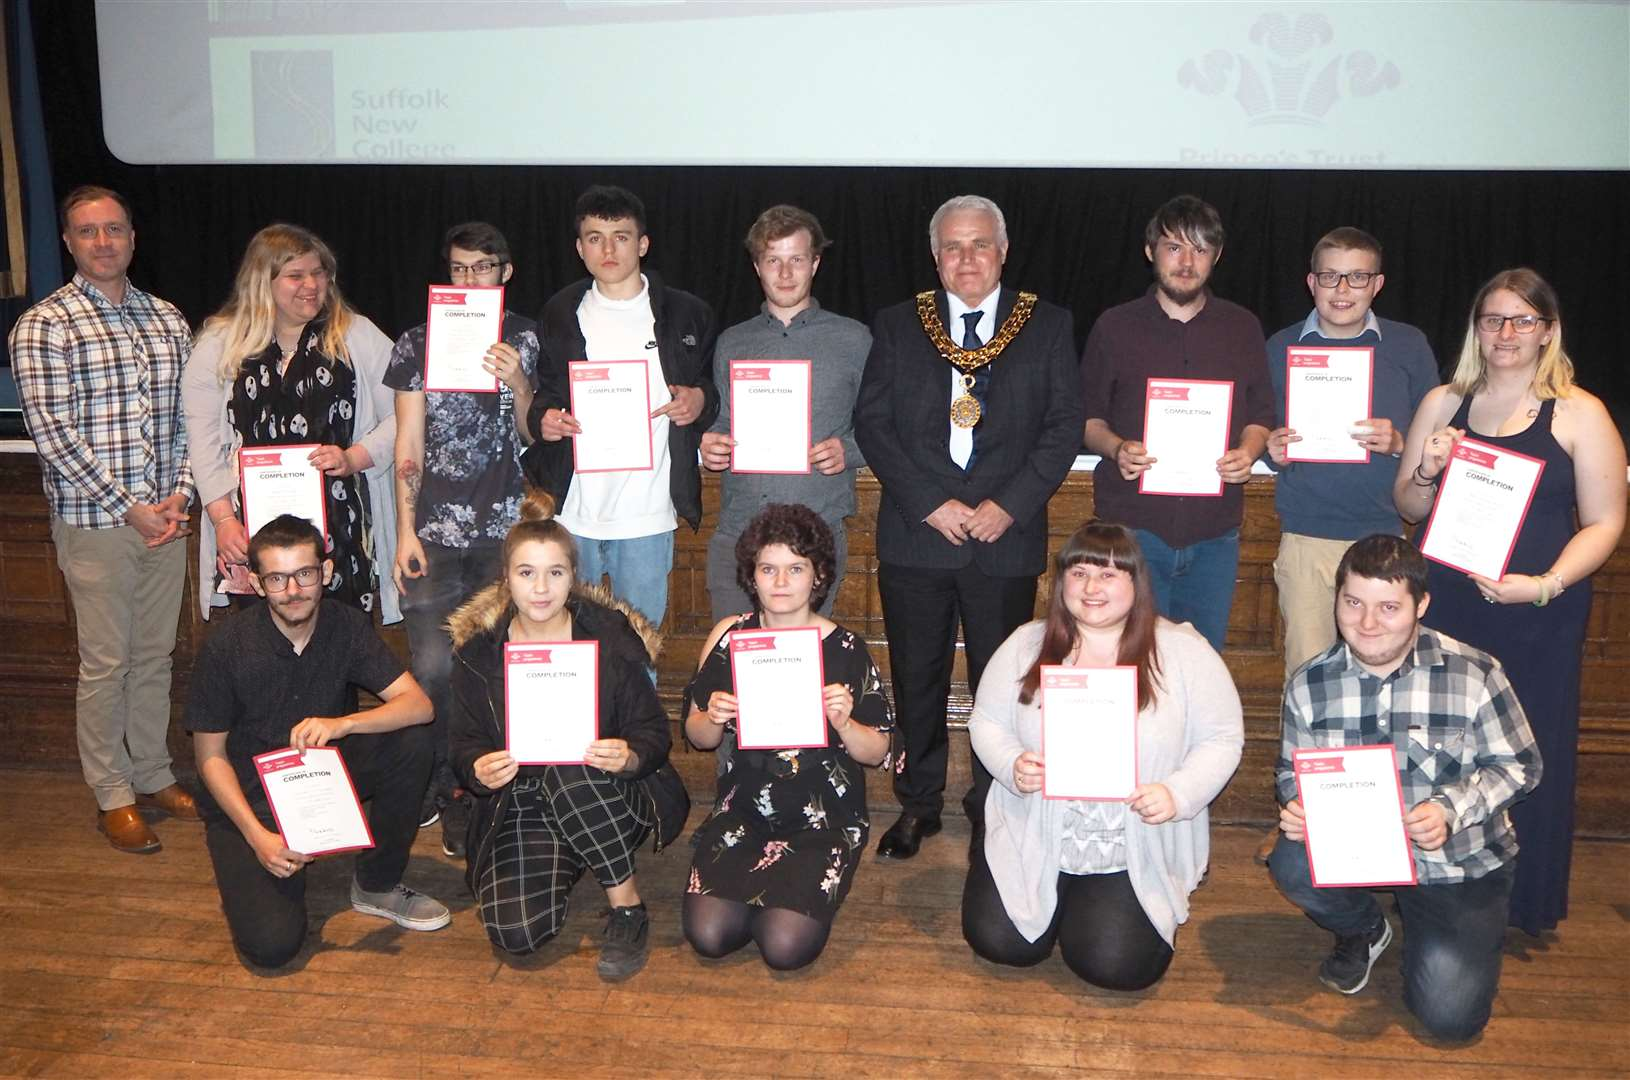 The Inspire Suffolk Prince's Trust Haverhill team receive their certificates. They were joined by the mayor of Haverhill, Cllr Tony Brown. Contributed picture.